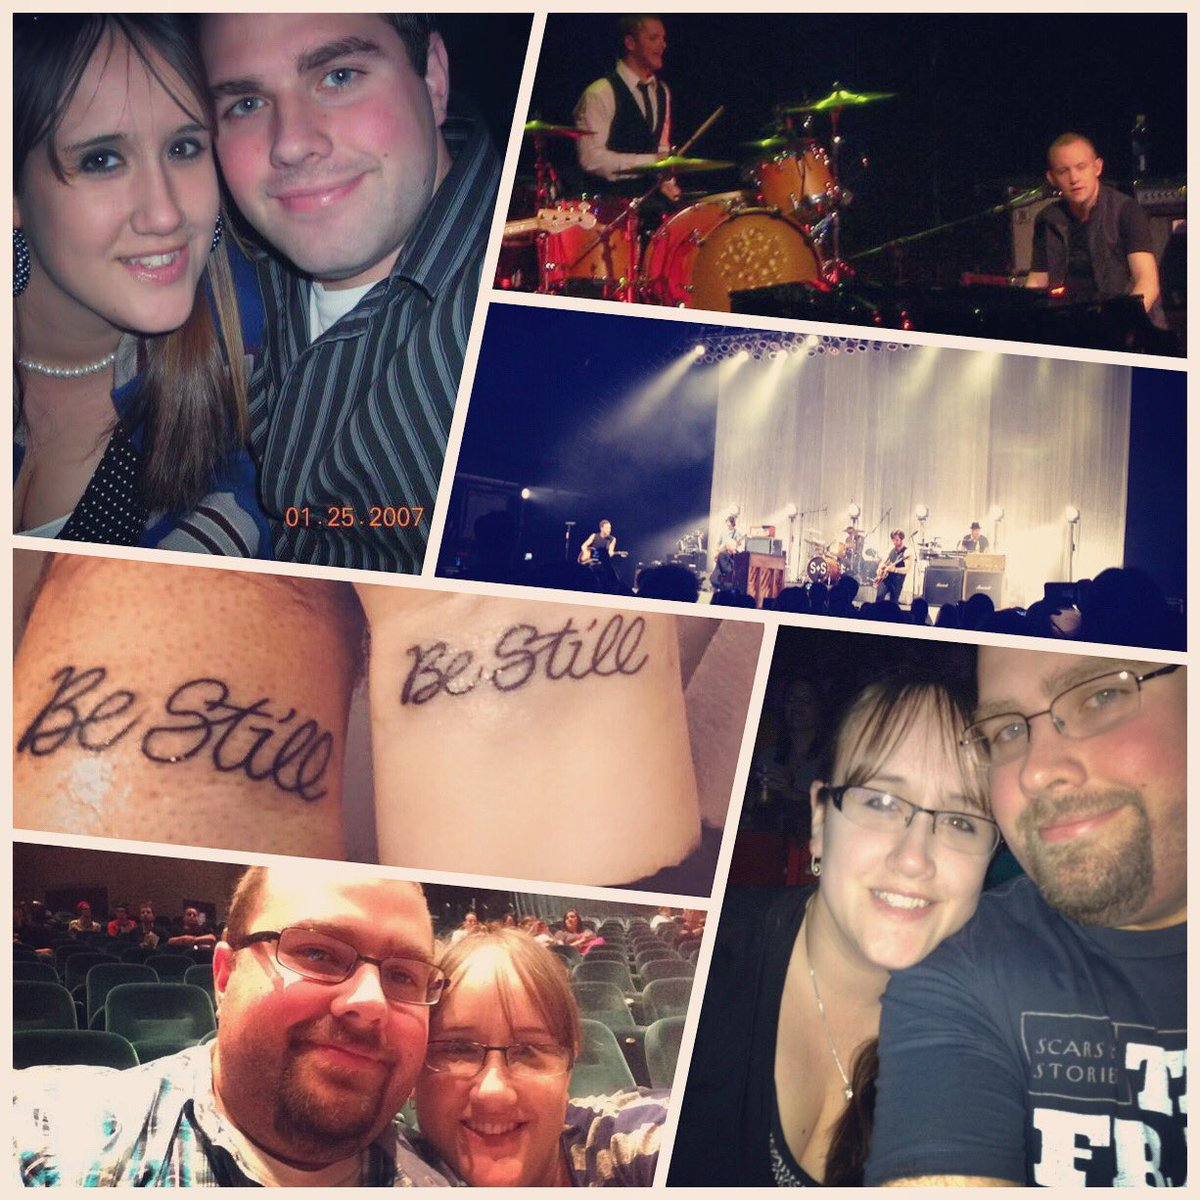 It's been 9 years, 9 months & 24 days since our first date. I took her to see @TheFray live. Tonight will be our 4th show. #thefray #detroit https://t.co/SXJ5cxrJKK